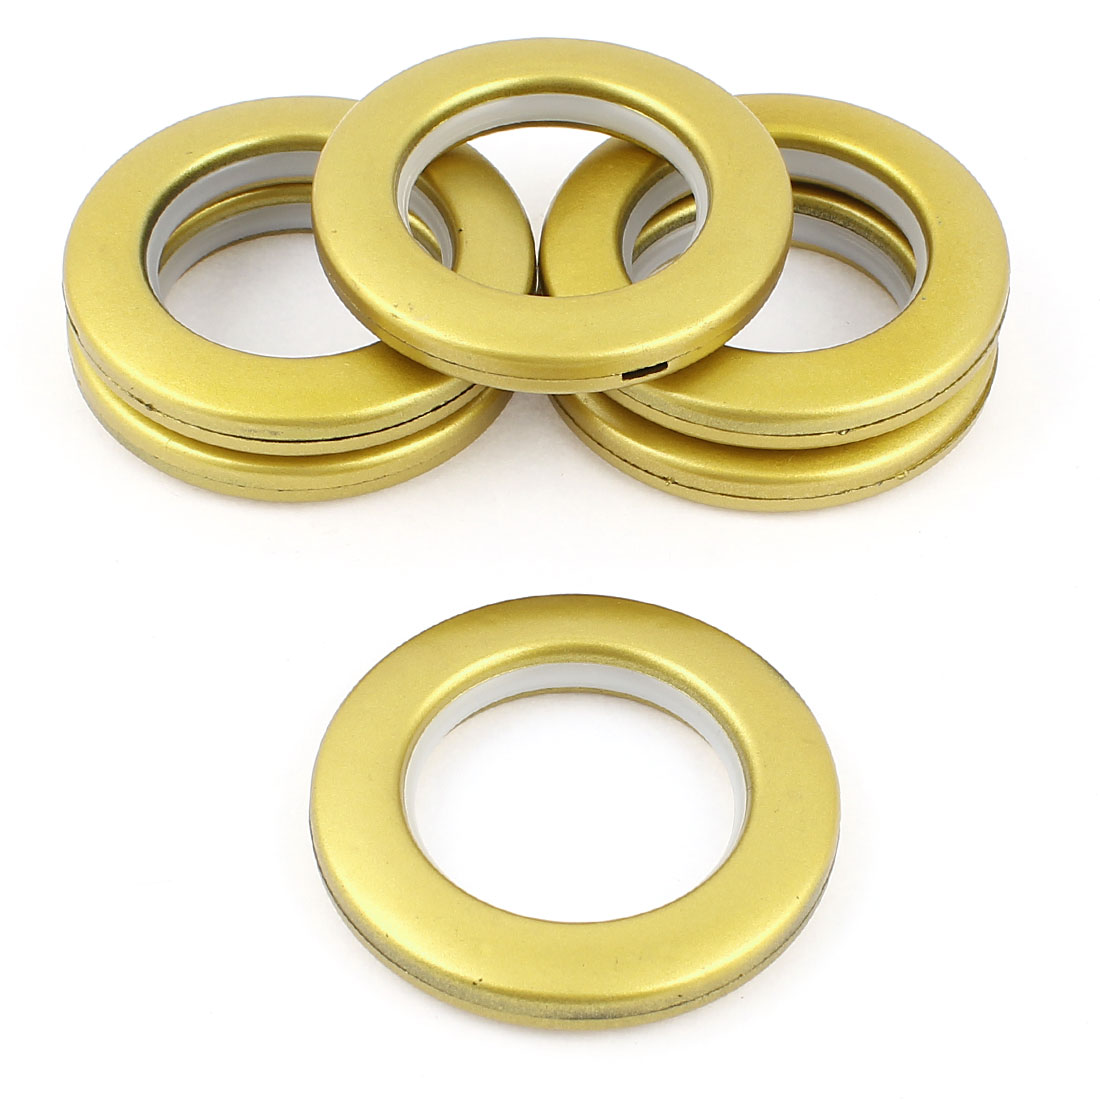 6 Pcs Gold Tone Plastic Rings 41mm Inner Diameter for Eyelet Curtain